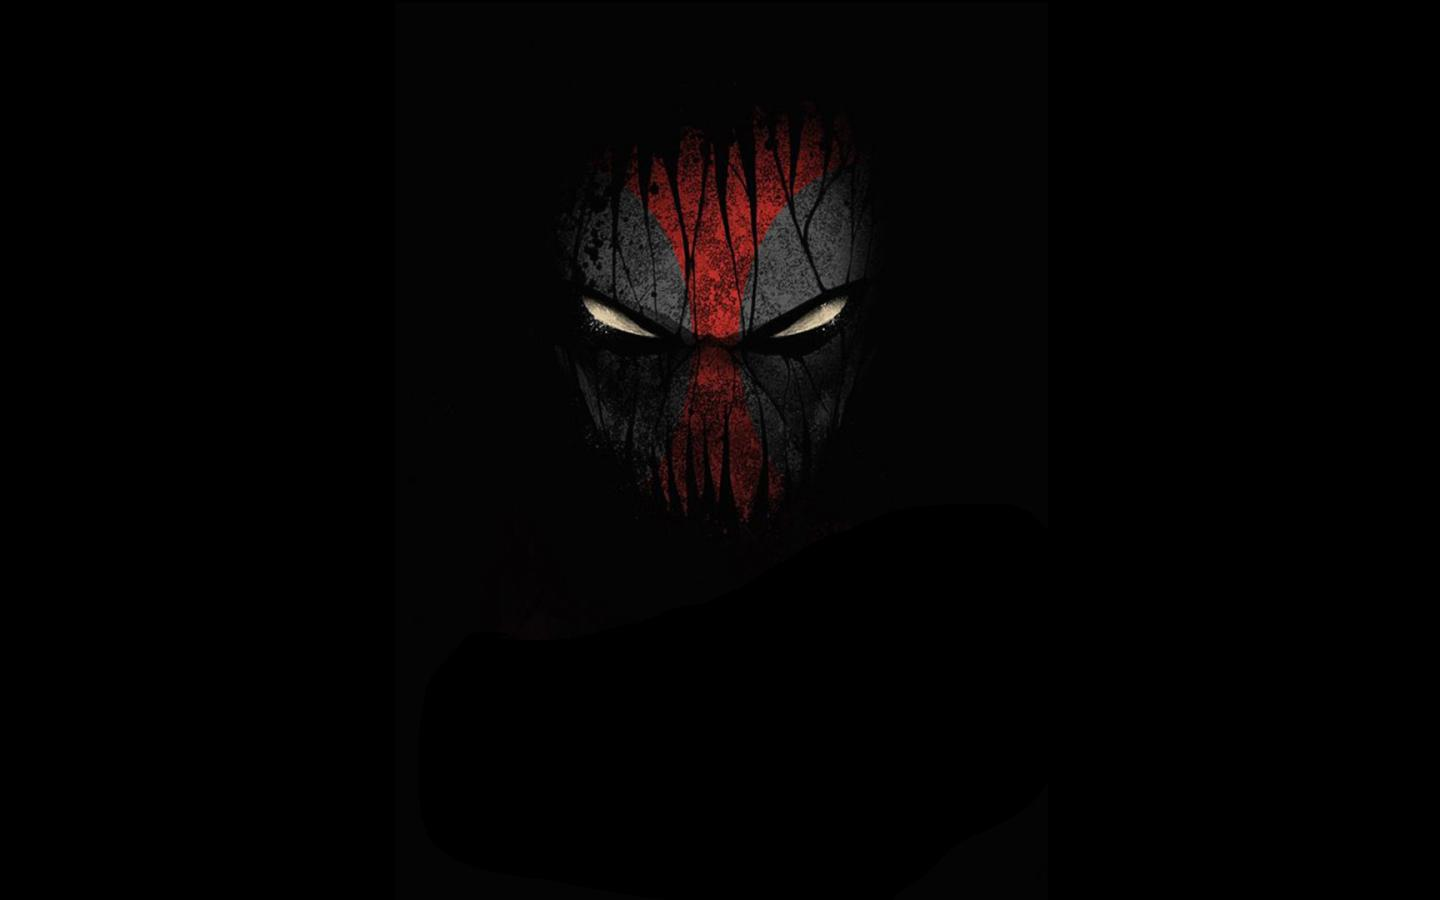 Deadpool In The Dark For Cool Wallpaper 27 Pics Hd